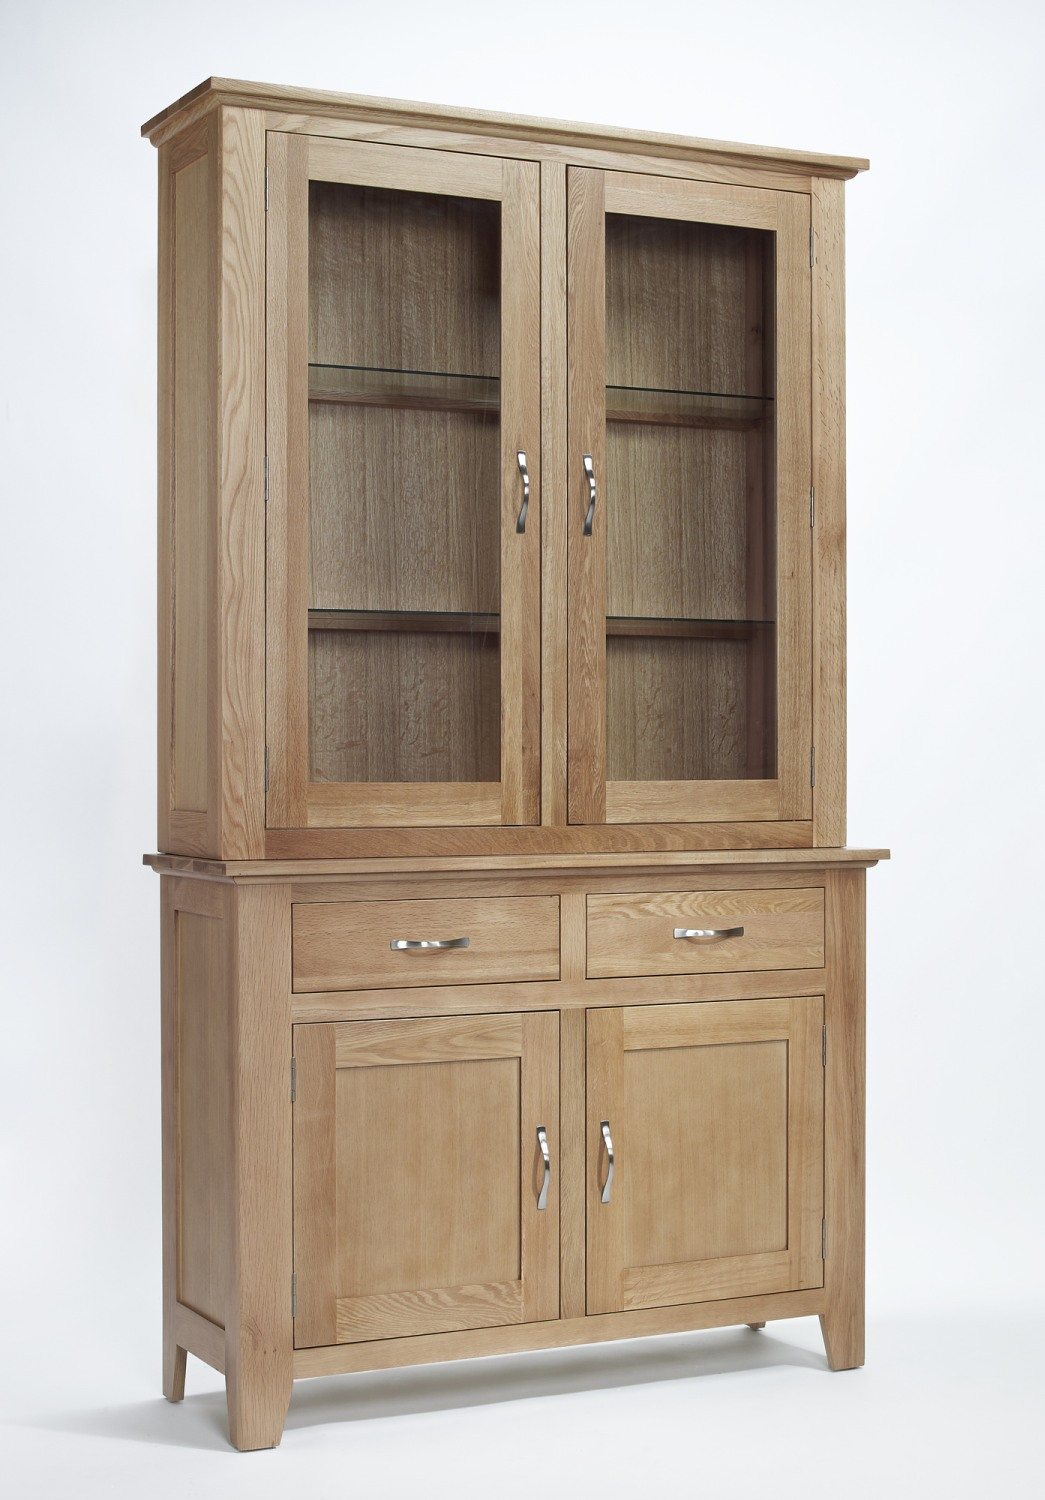 Compton solid oak furniture dining room dresser display for Solid oak furniture